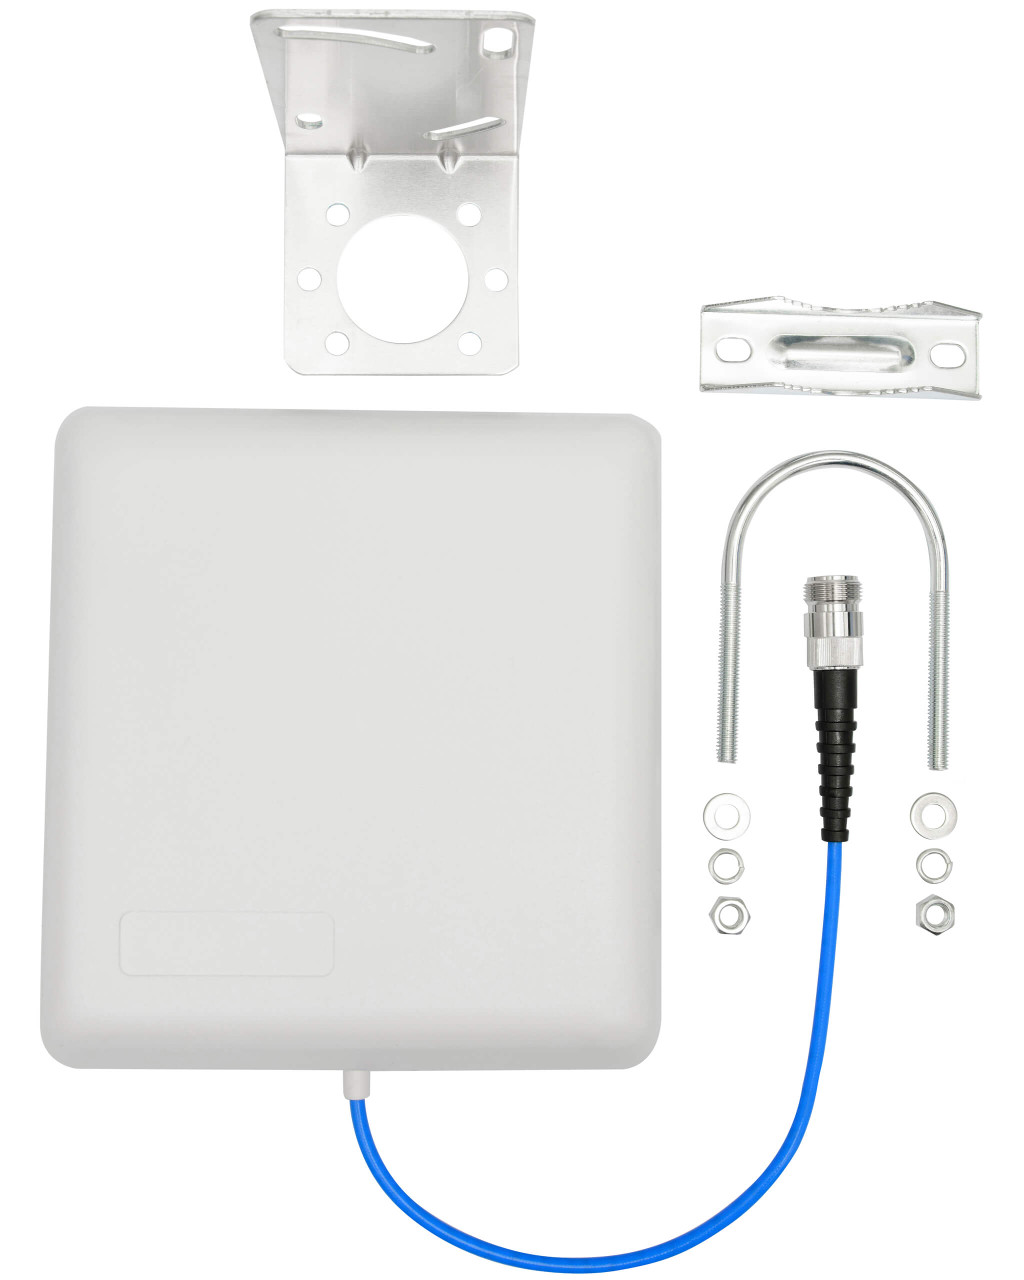 The Indoor Board 50 - Indoor Wall Mount Antenna, 140 PIM with components